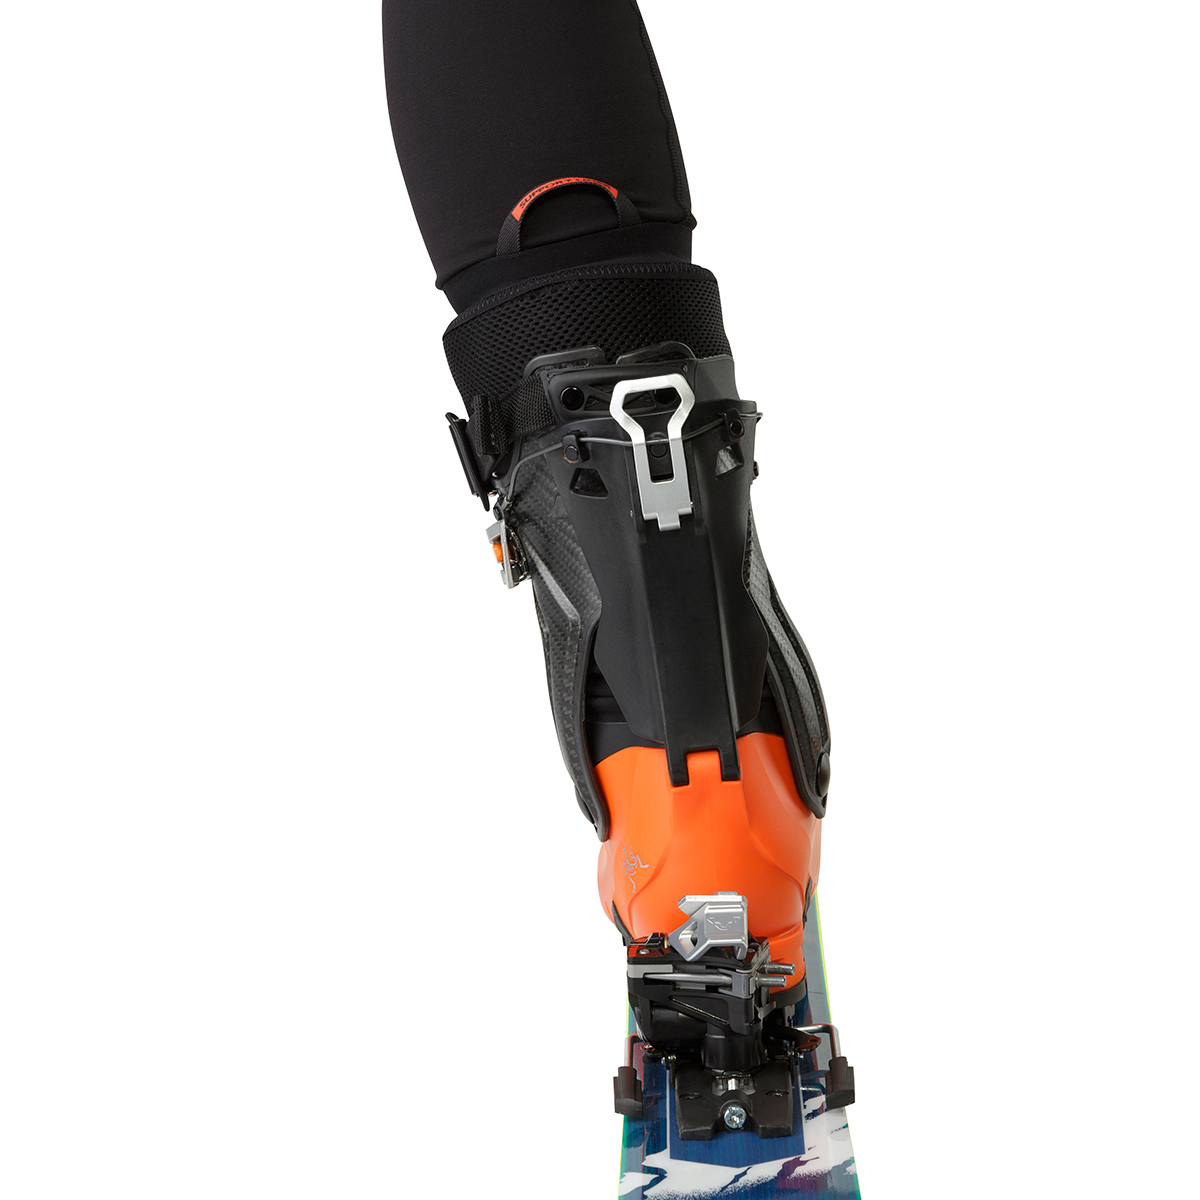 b94f2d8668 ... Boot Arc teryx Procline Carbon Support Ski Touring and Mountaineering  ...